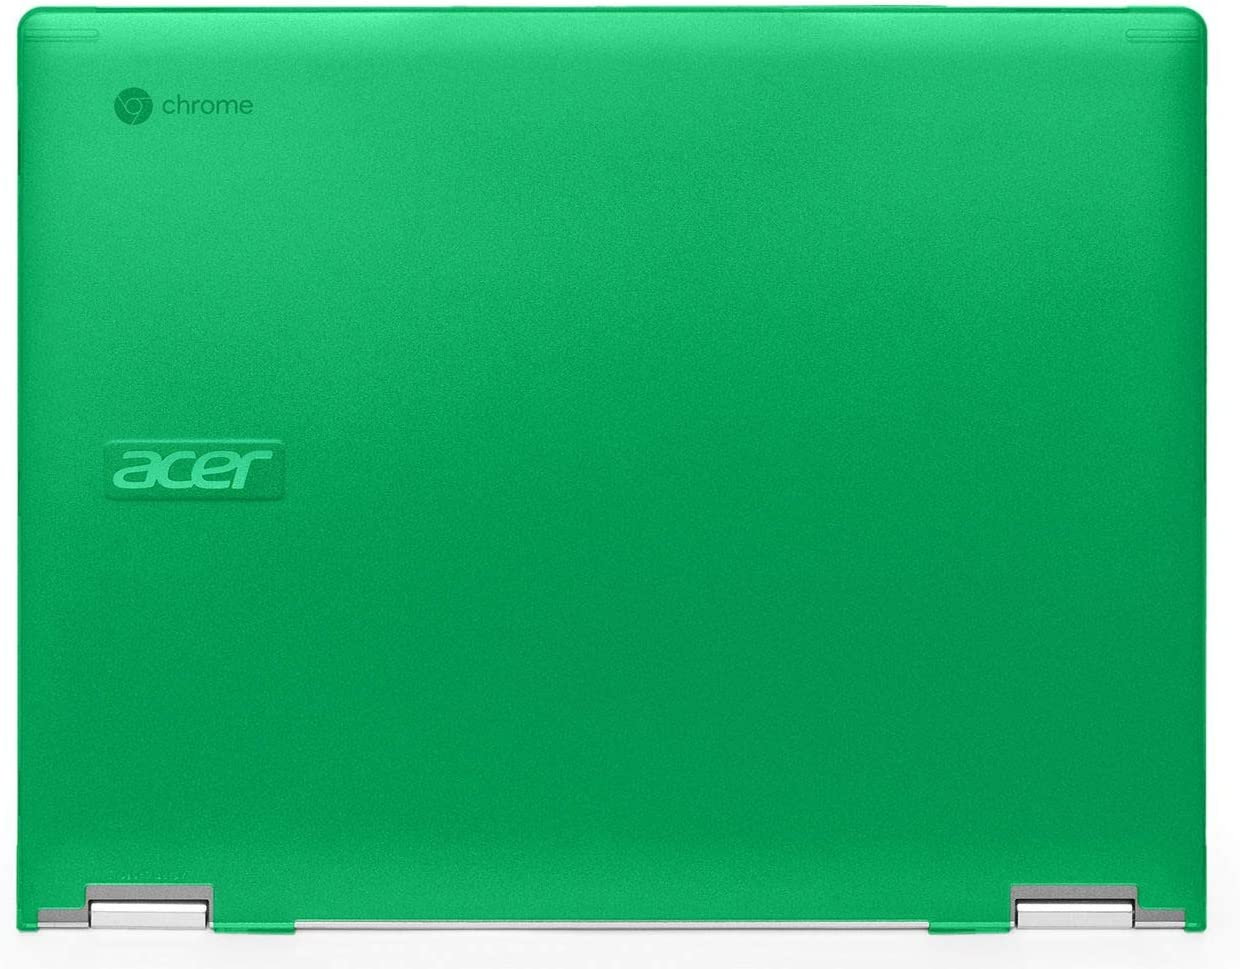 mCover Hard Shell Case for 2018/2019 Acer Chromebook Spin 13 CP713-1WN Series (NOT Compatible with All Other Acer Chromebooks) - AC-SP13-CP713-1WN-Green